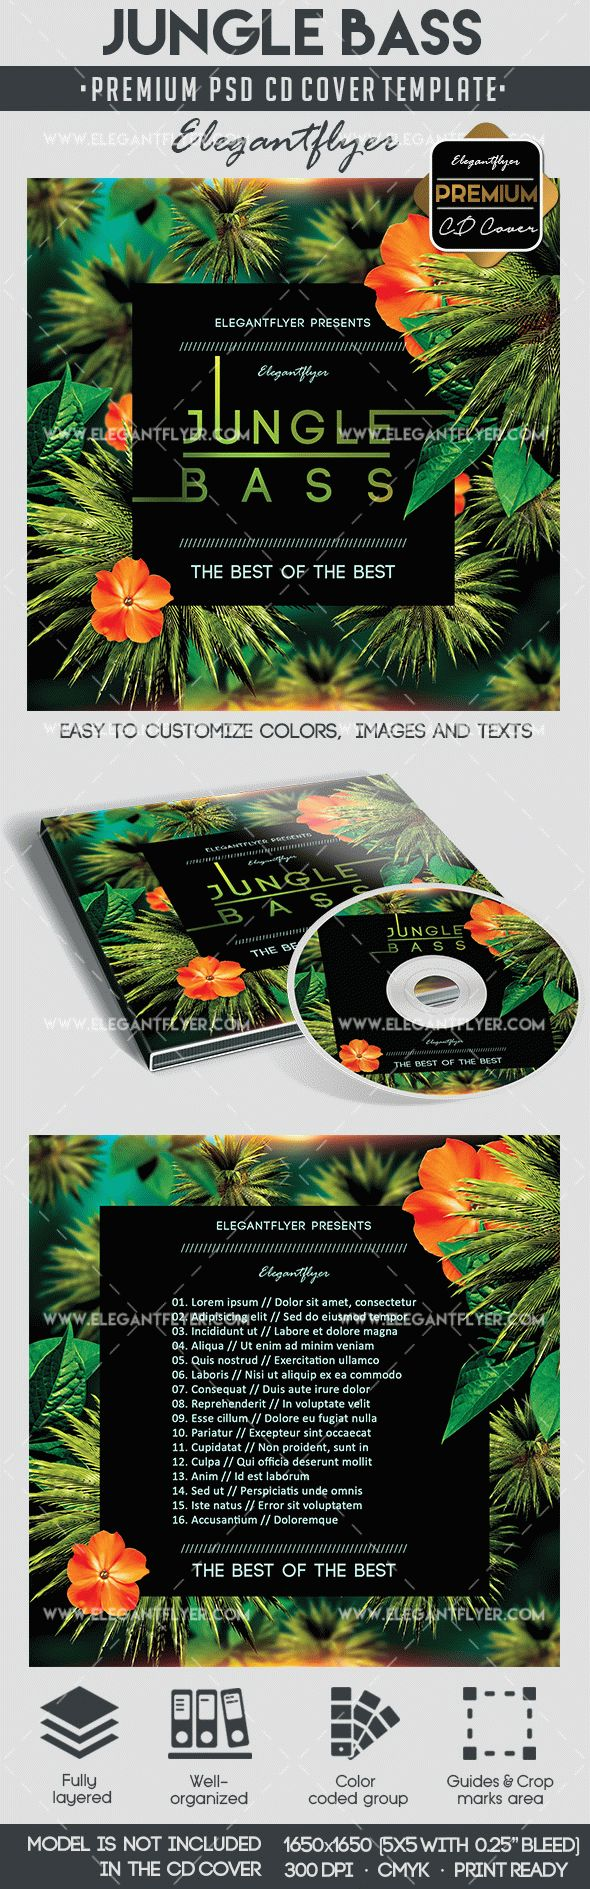 Jungle Bass – Premium CD&DVD cover PSD Template